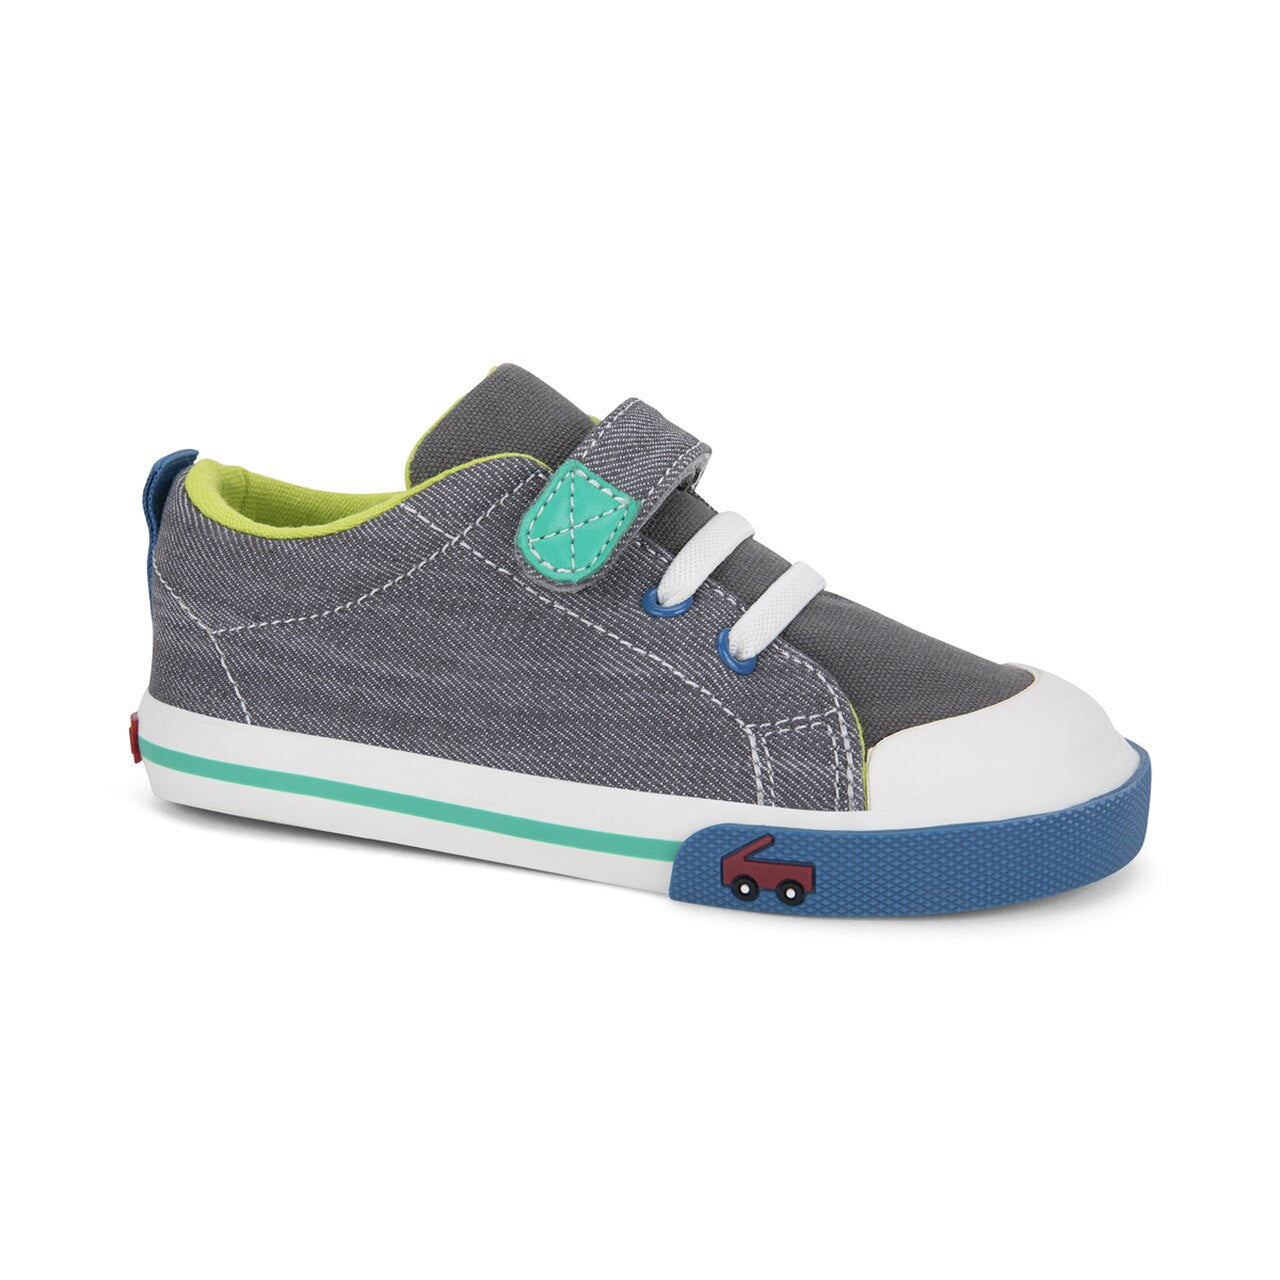 Stevie II - Gray Denim by See Kai Run - Ponseti's Shoes